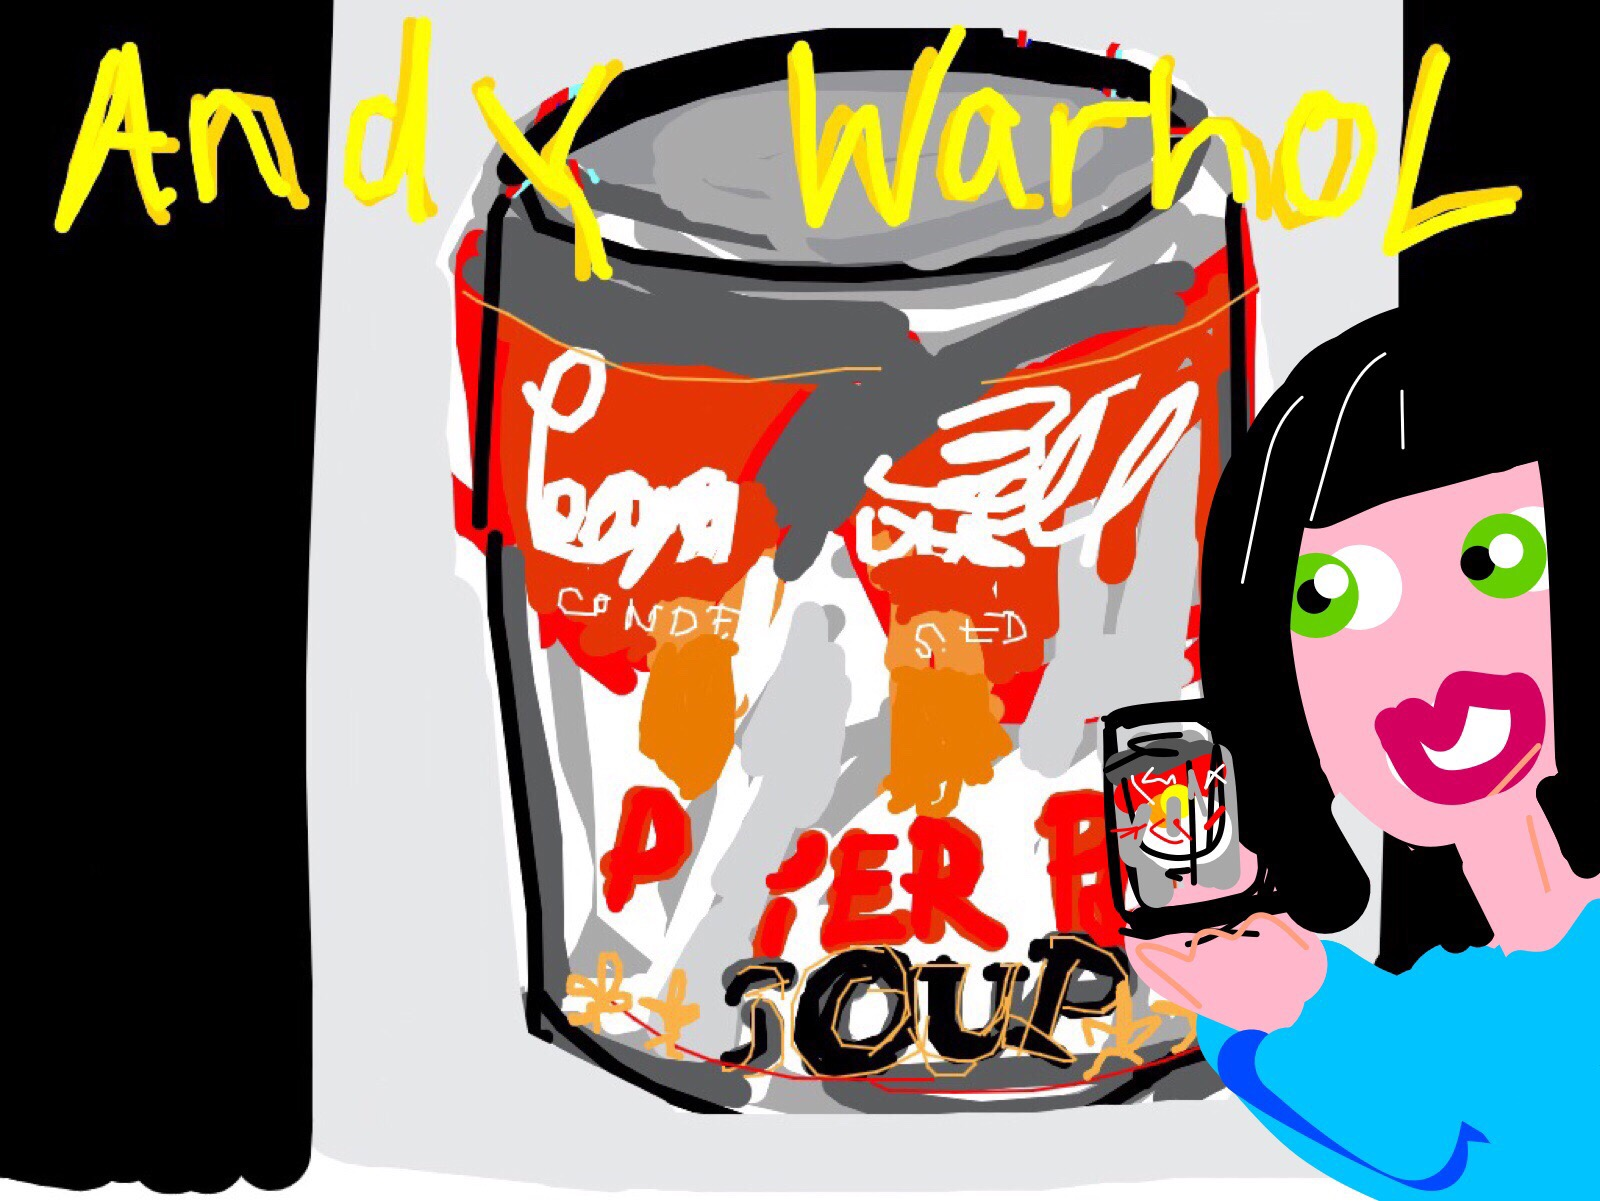 Museum Selfie with Small Torn Campbell's Soup Can (Pepper Pot), Andy Warhol, 1962